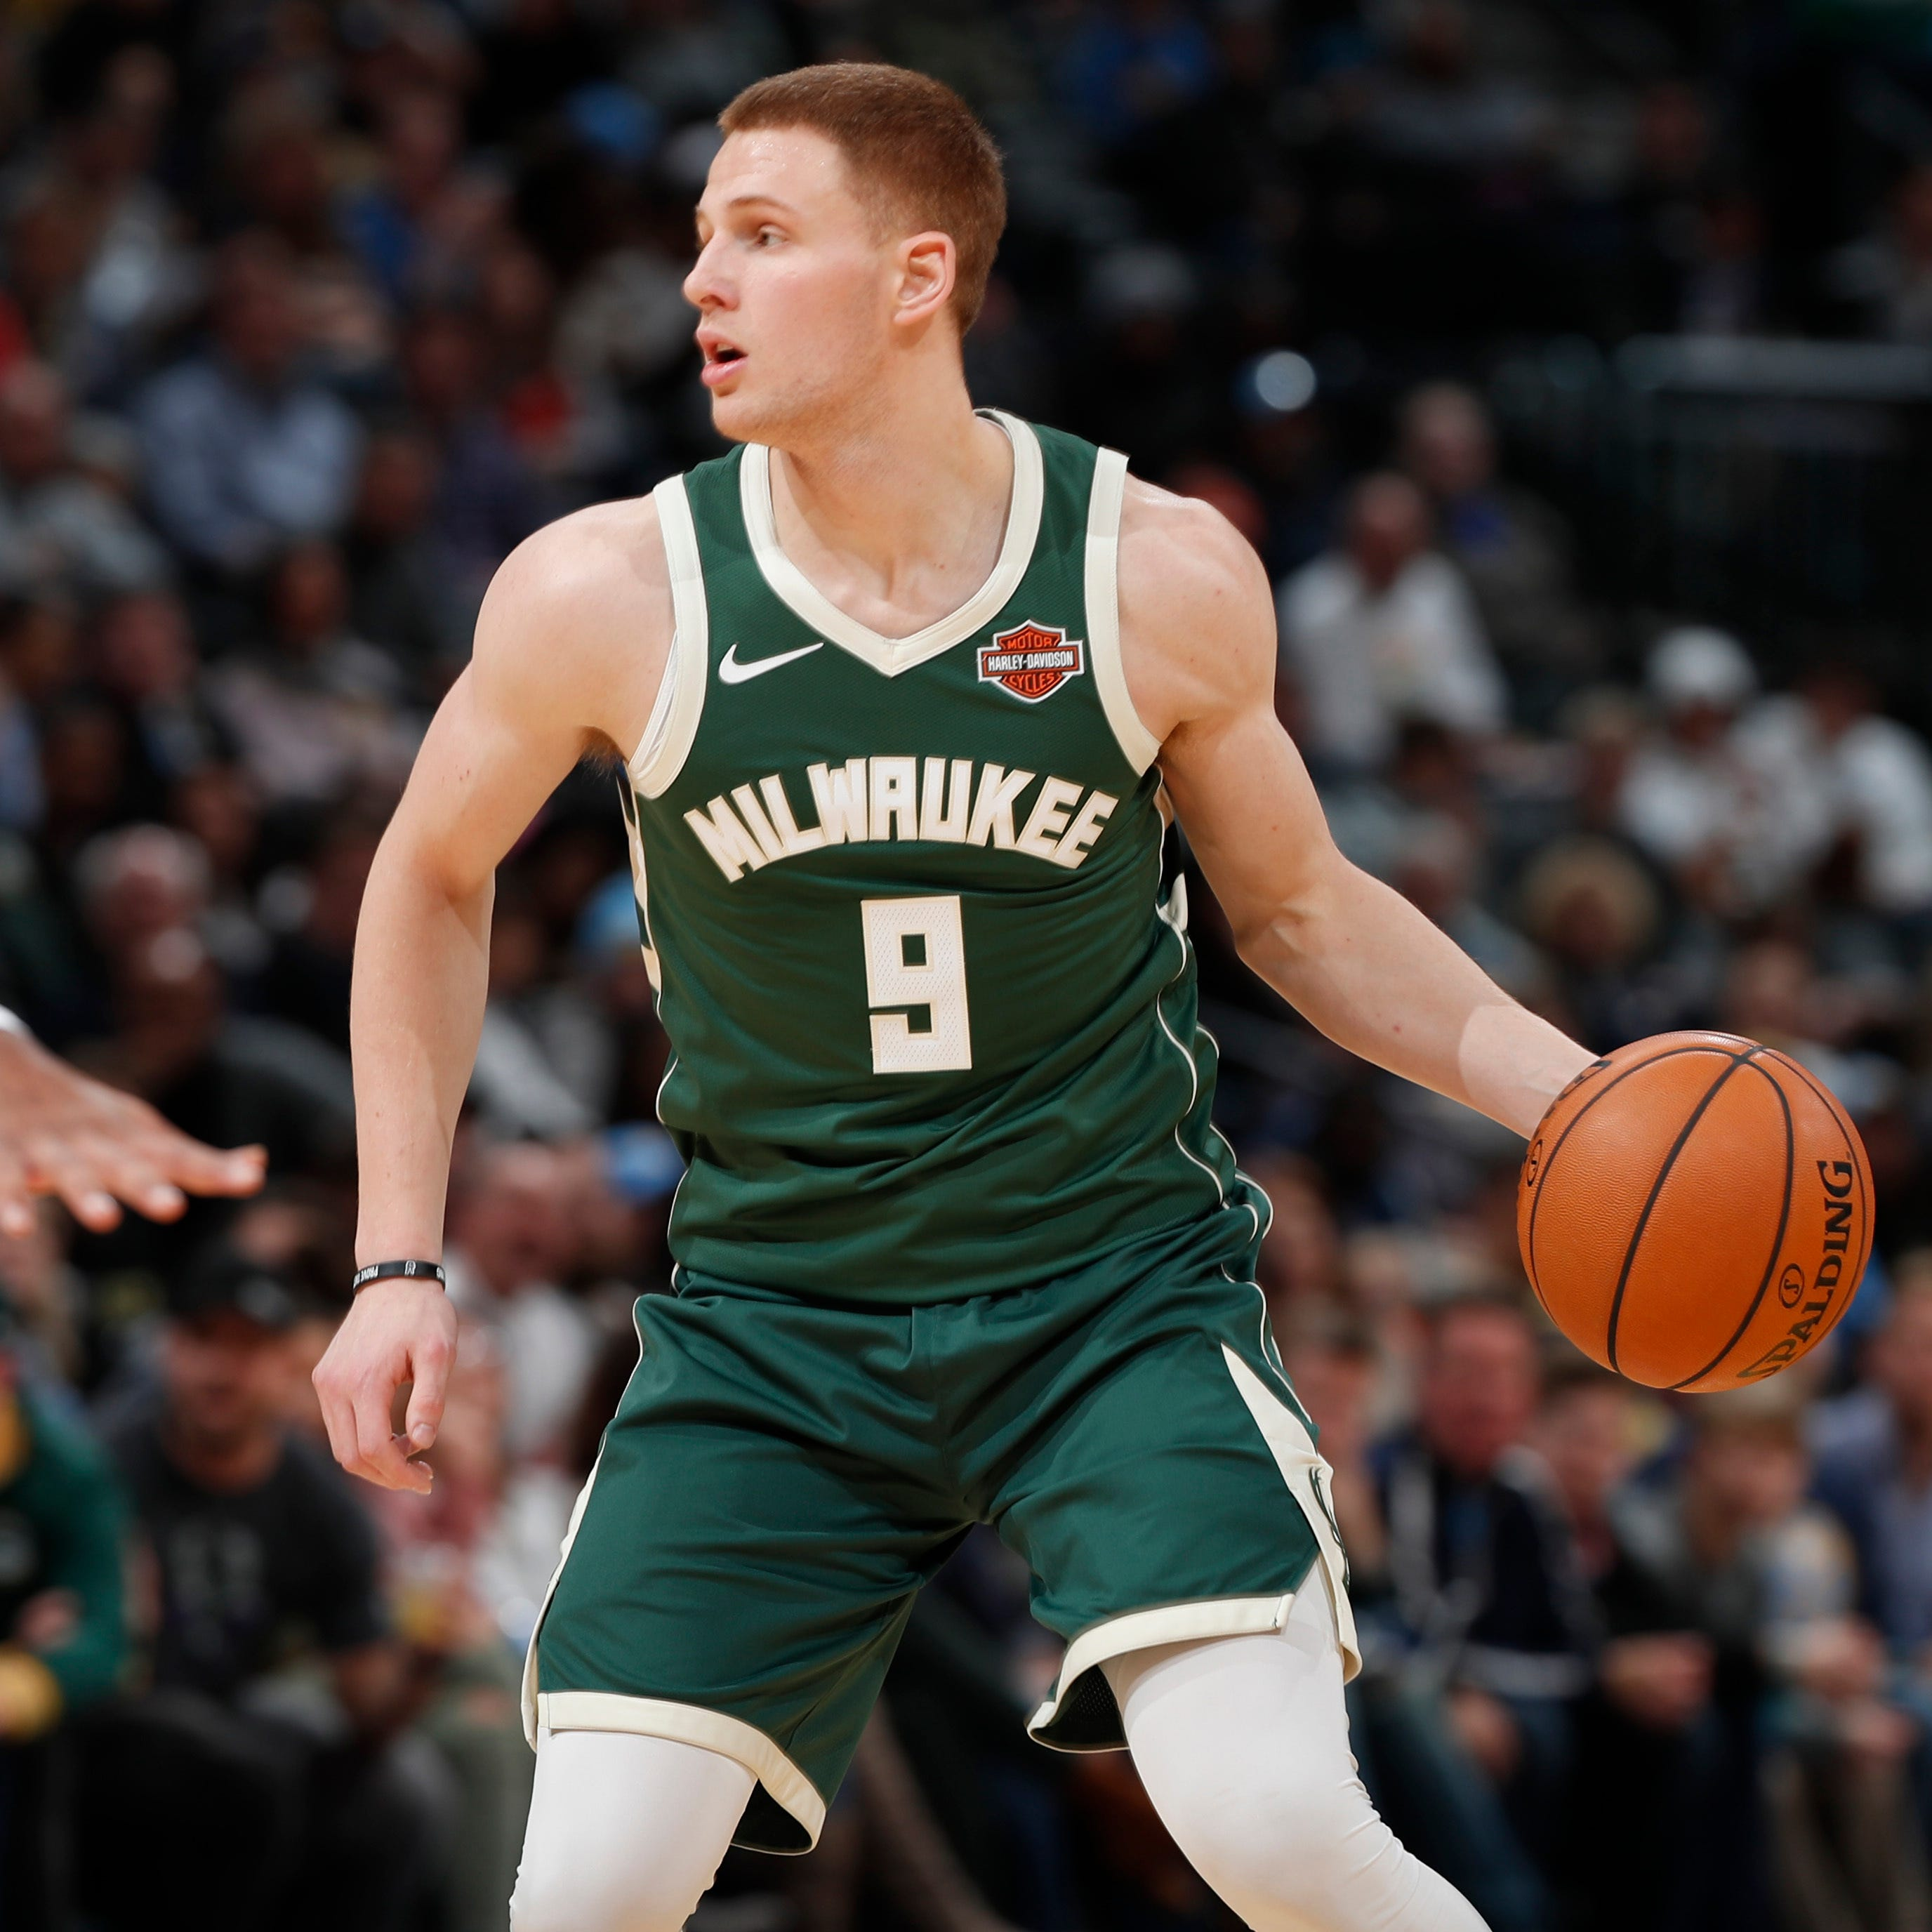 The story of DiVincenzo's 'White Donte' nickname